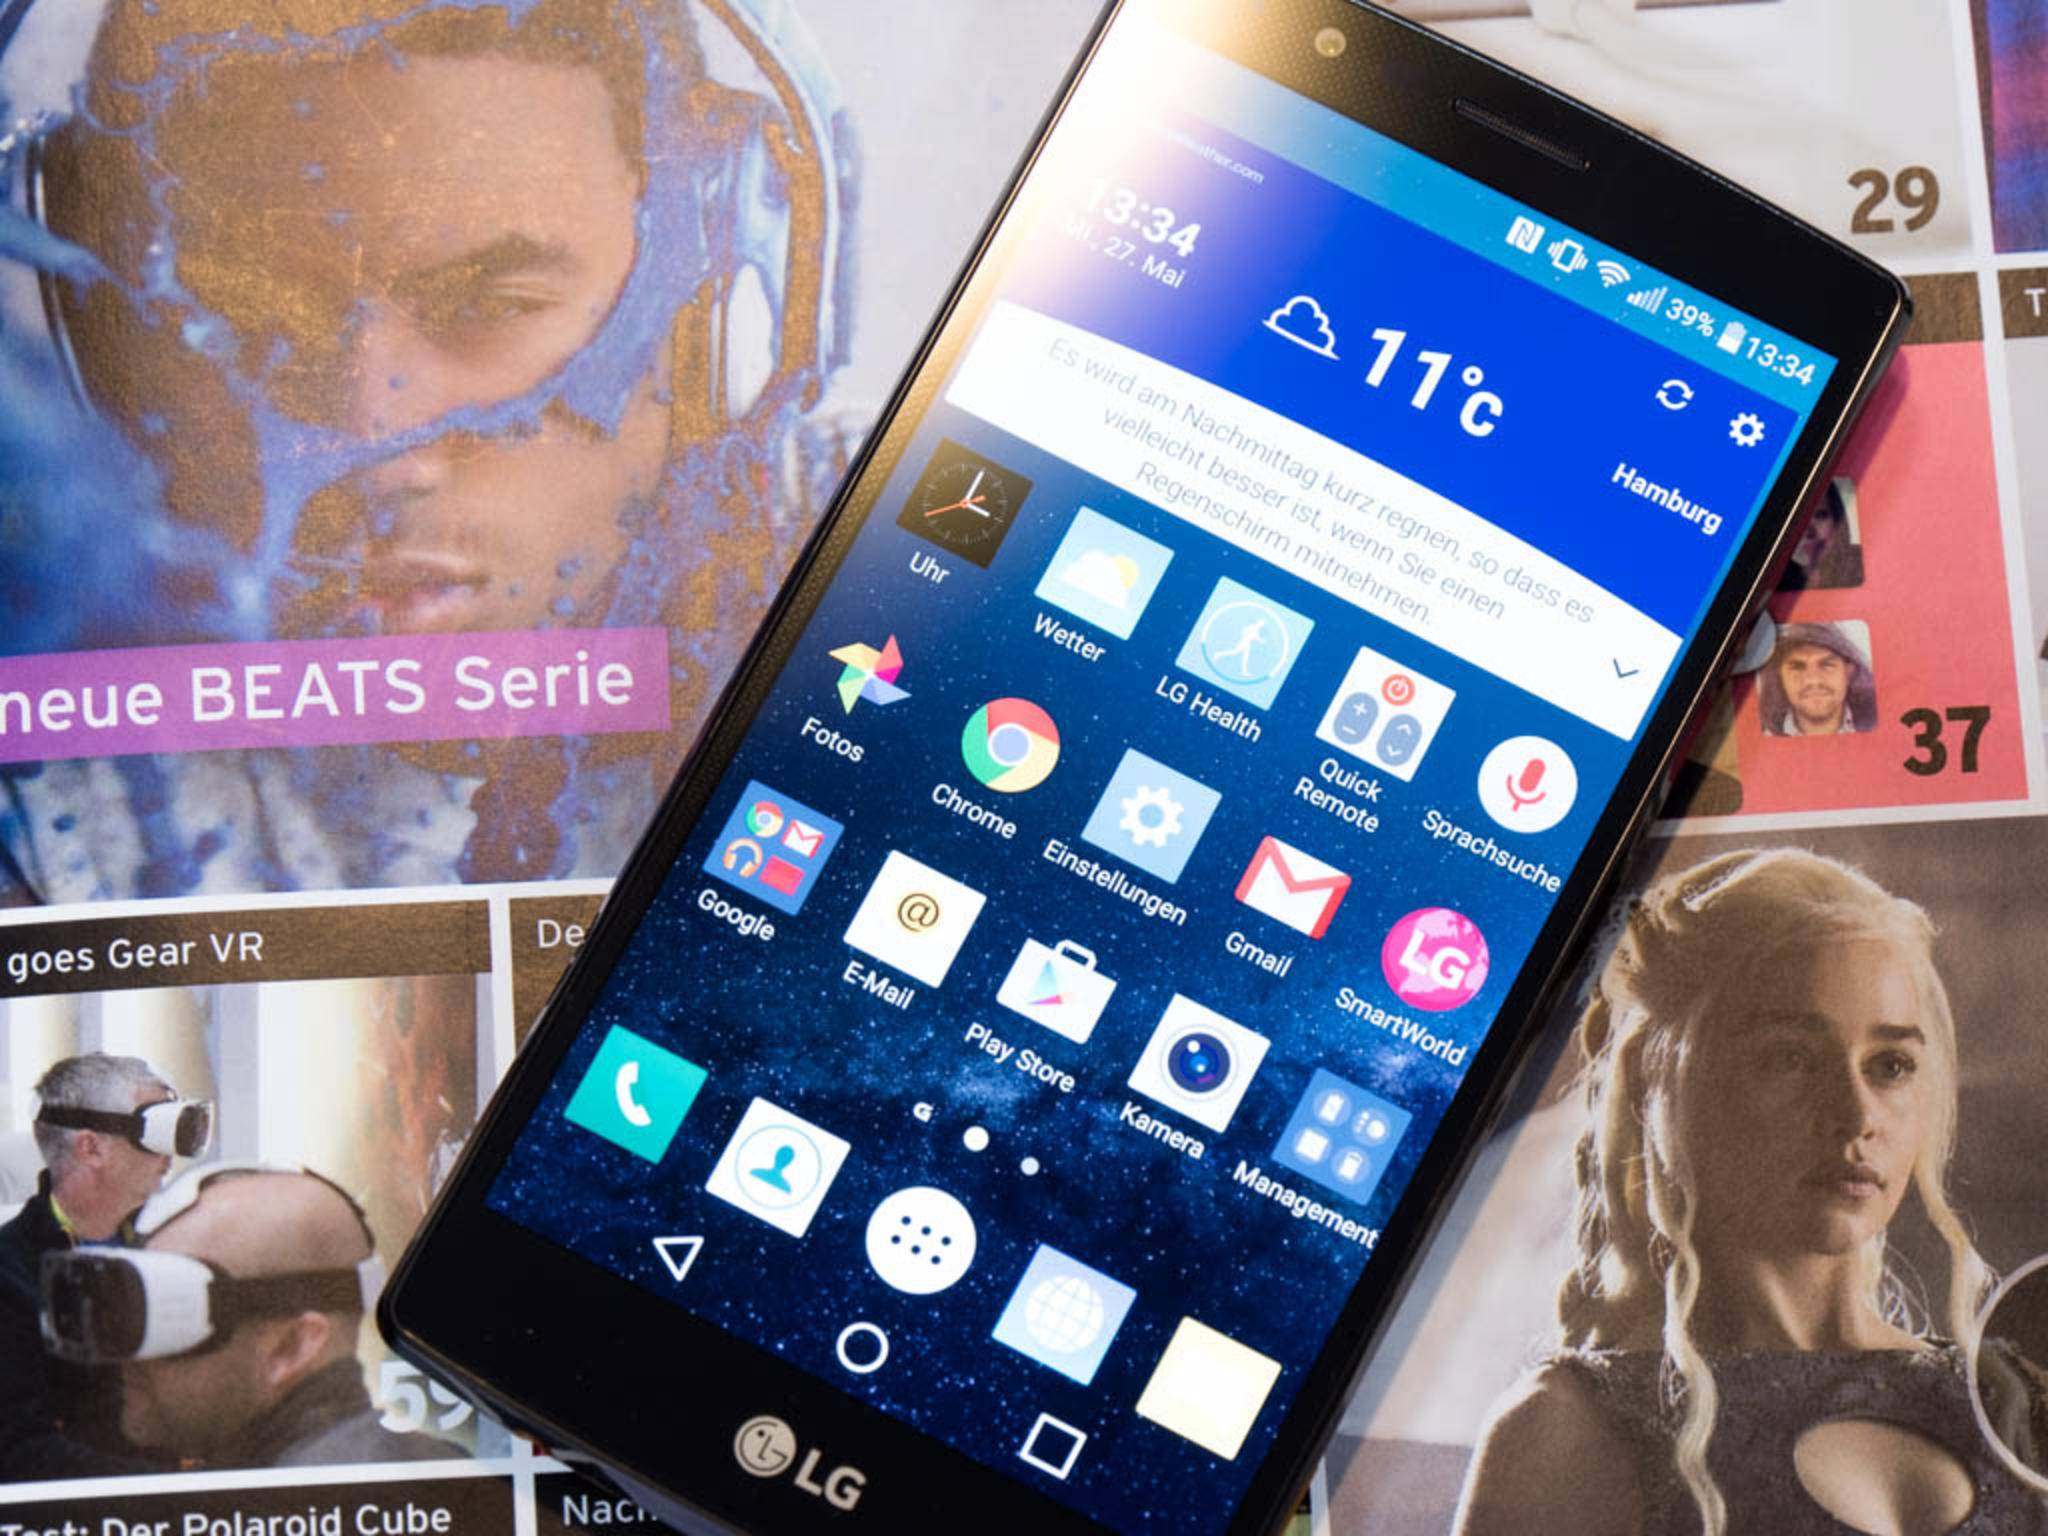 Das LG G4 bekommt als erstes Android 6.0 Marshmallow.